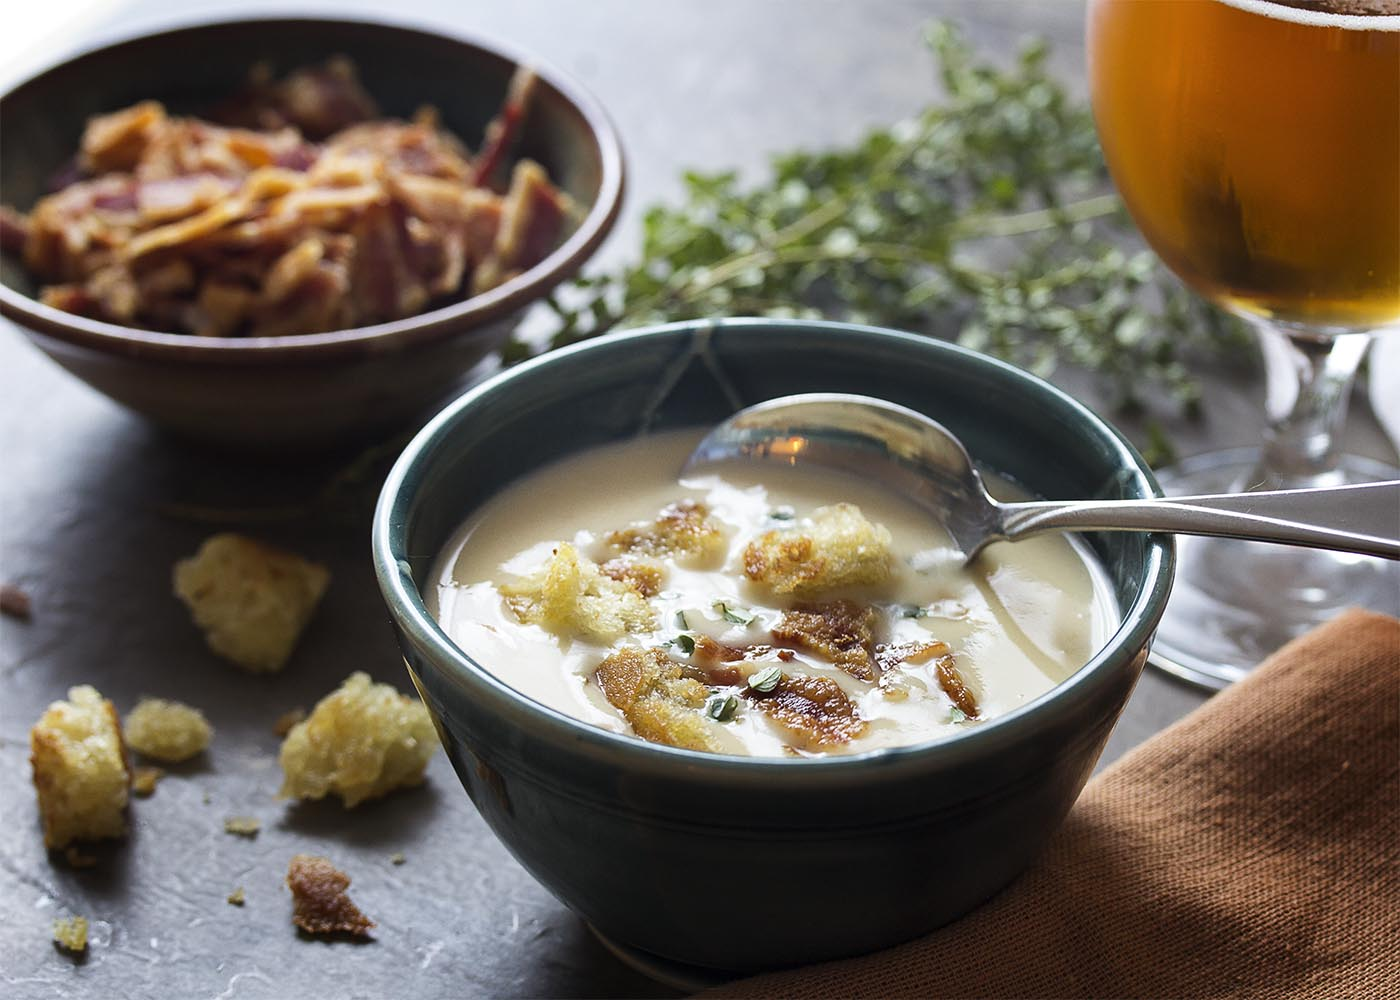 A spoon dipping into a bowl of bacon cheddar soup with croutons and bacon crumbles and a glass of beer.